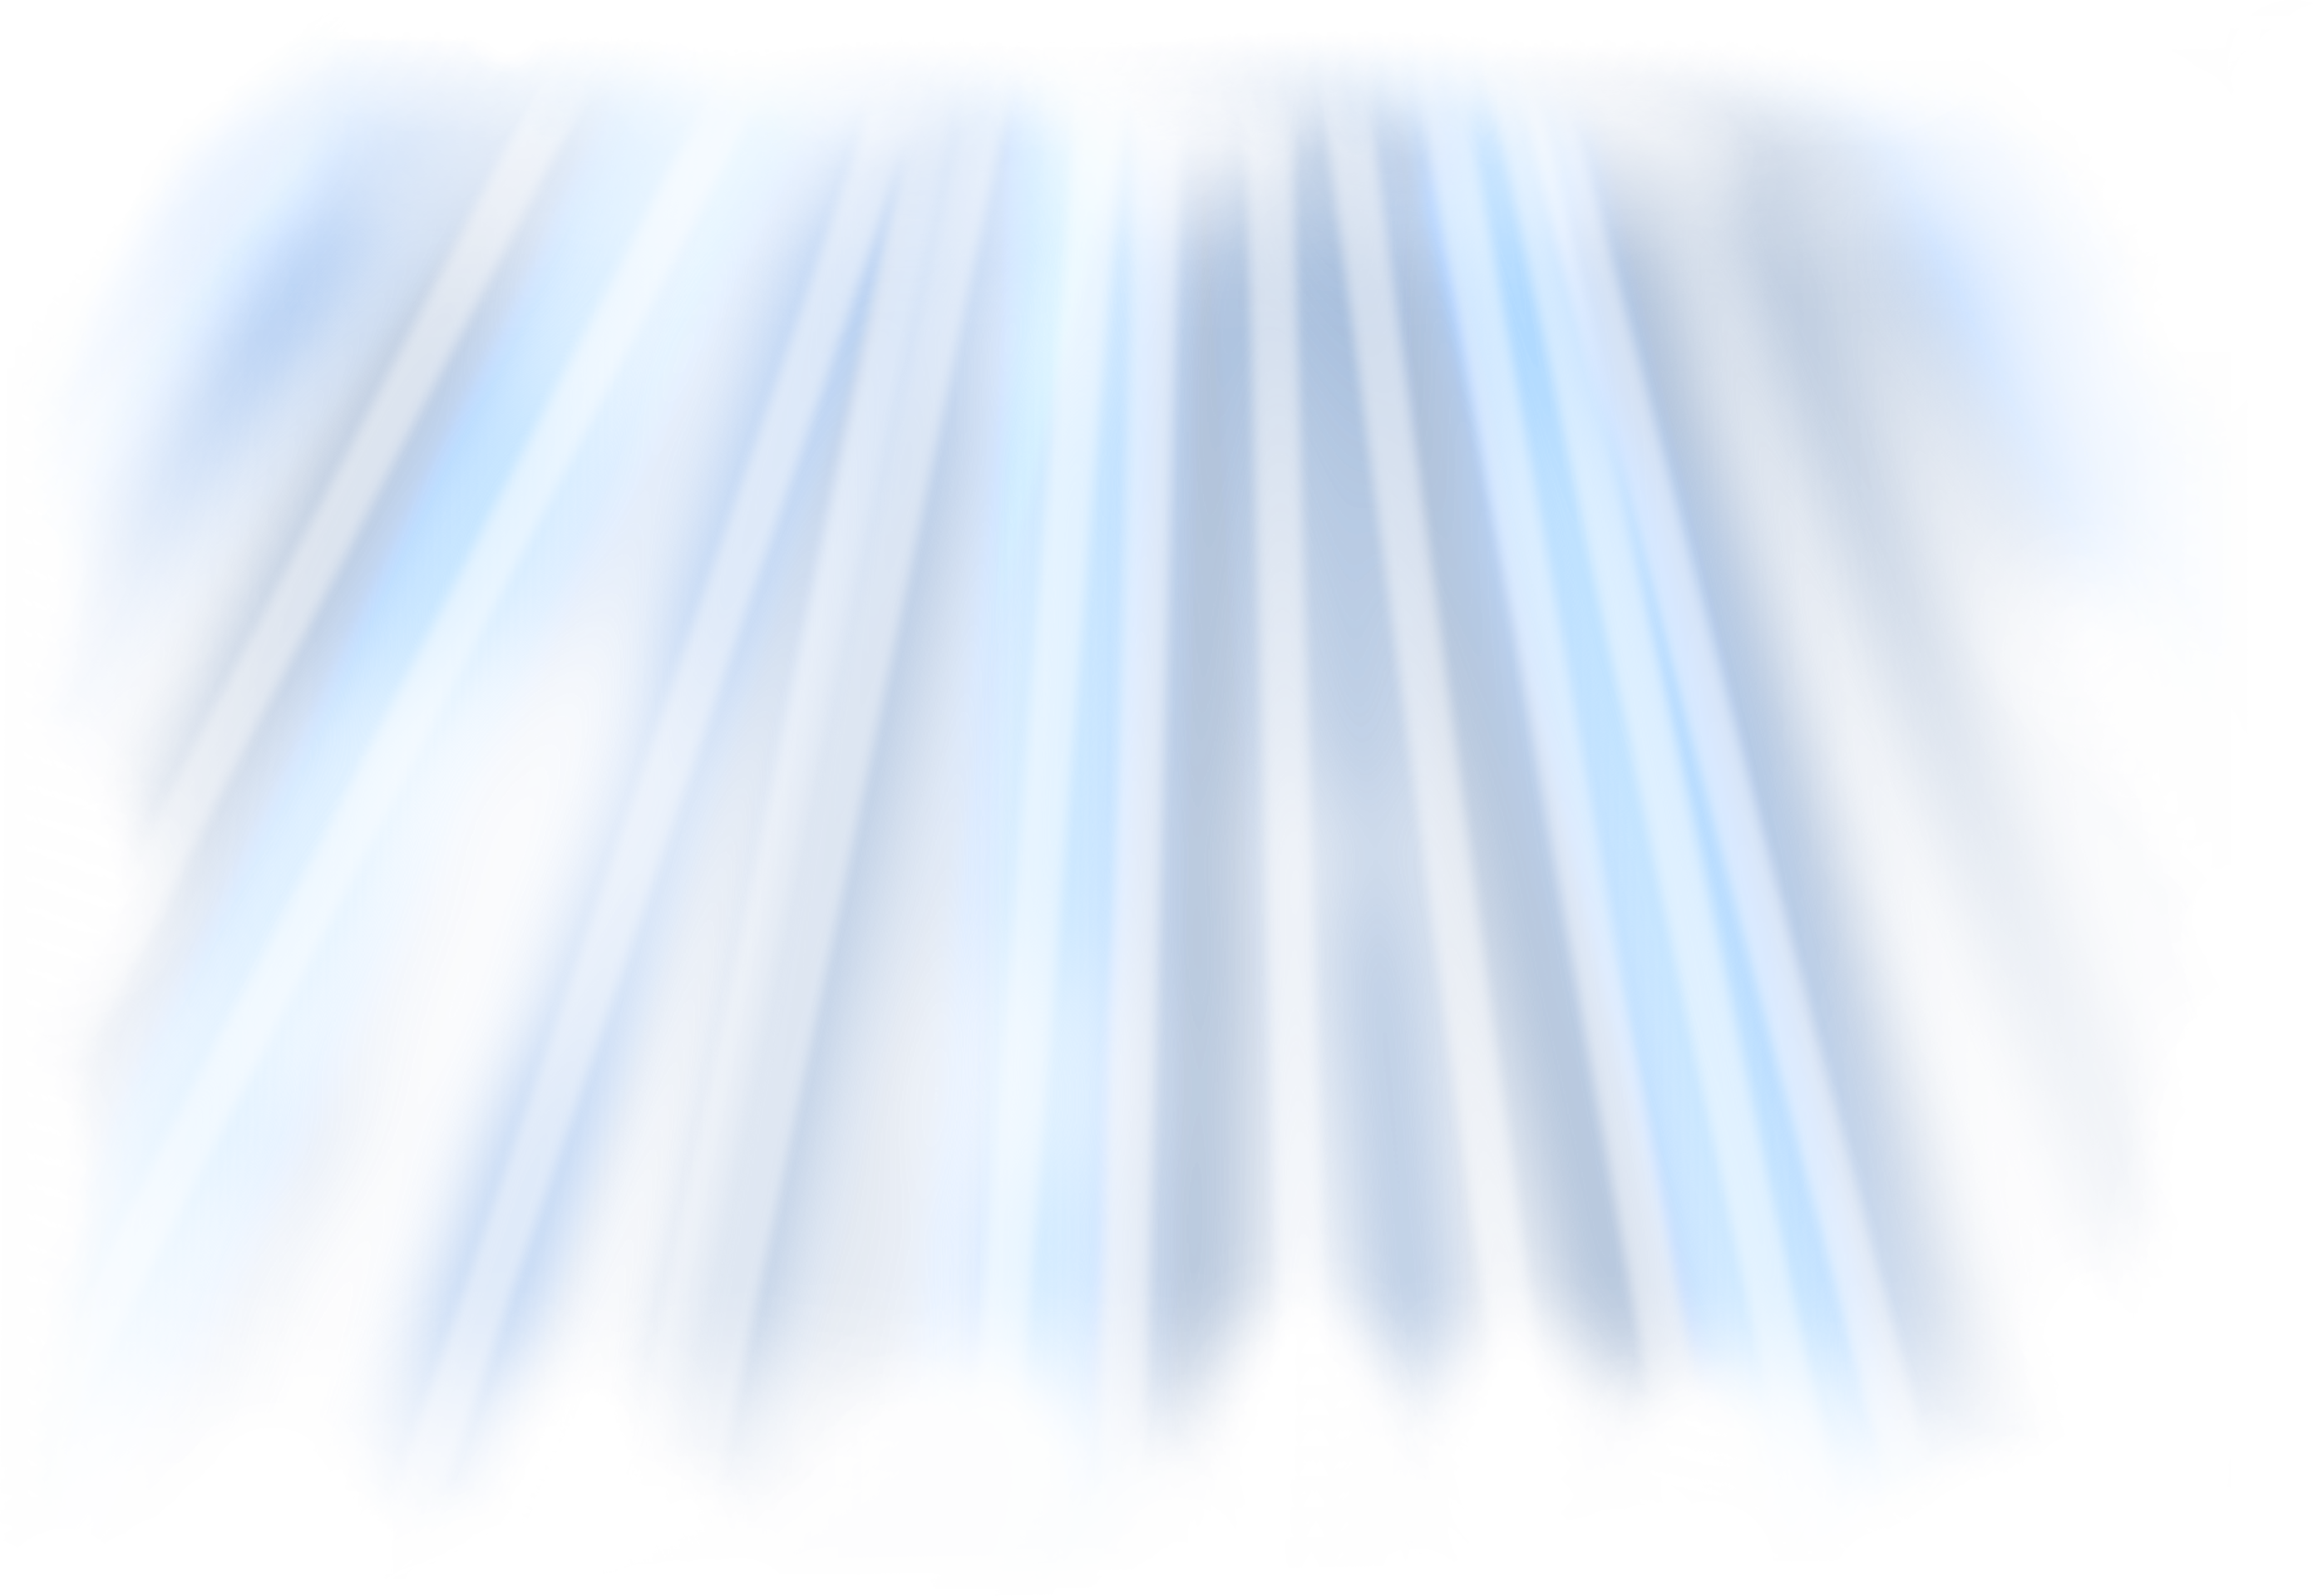 Light beams from sun clipart picture freeuse download PNG Rays Of Light Transparent Rays Of Light.PNG Images. | PlusPNG picture freeuse download